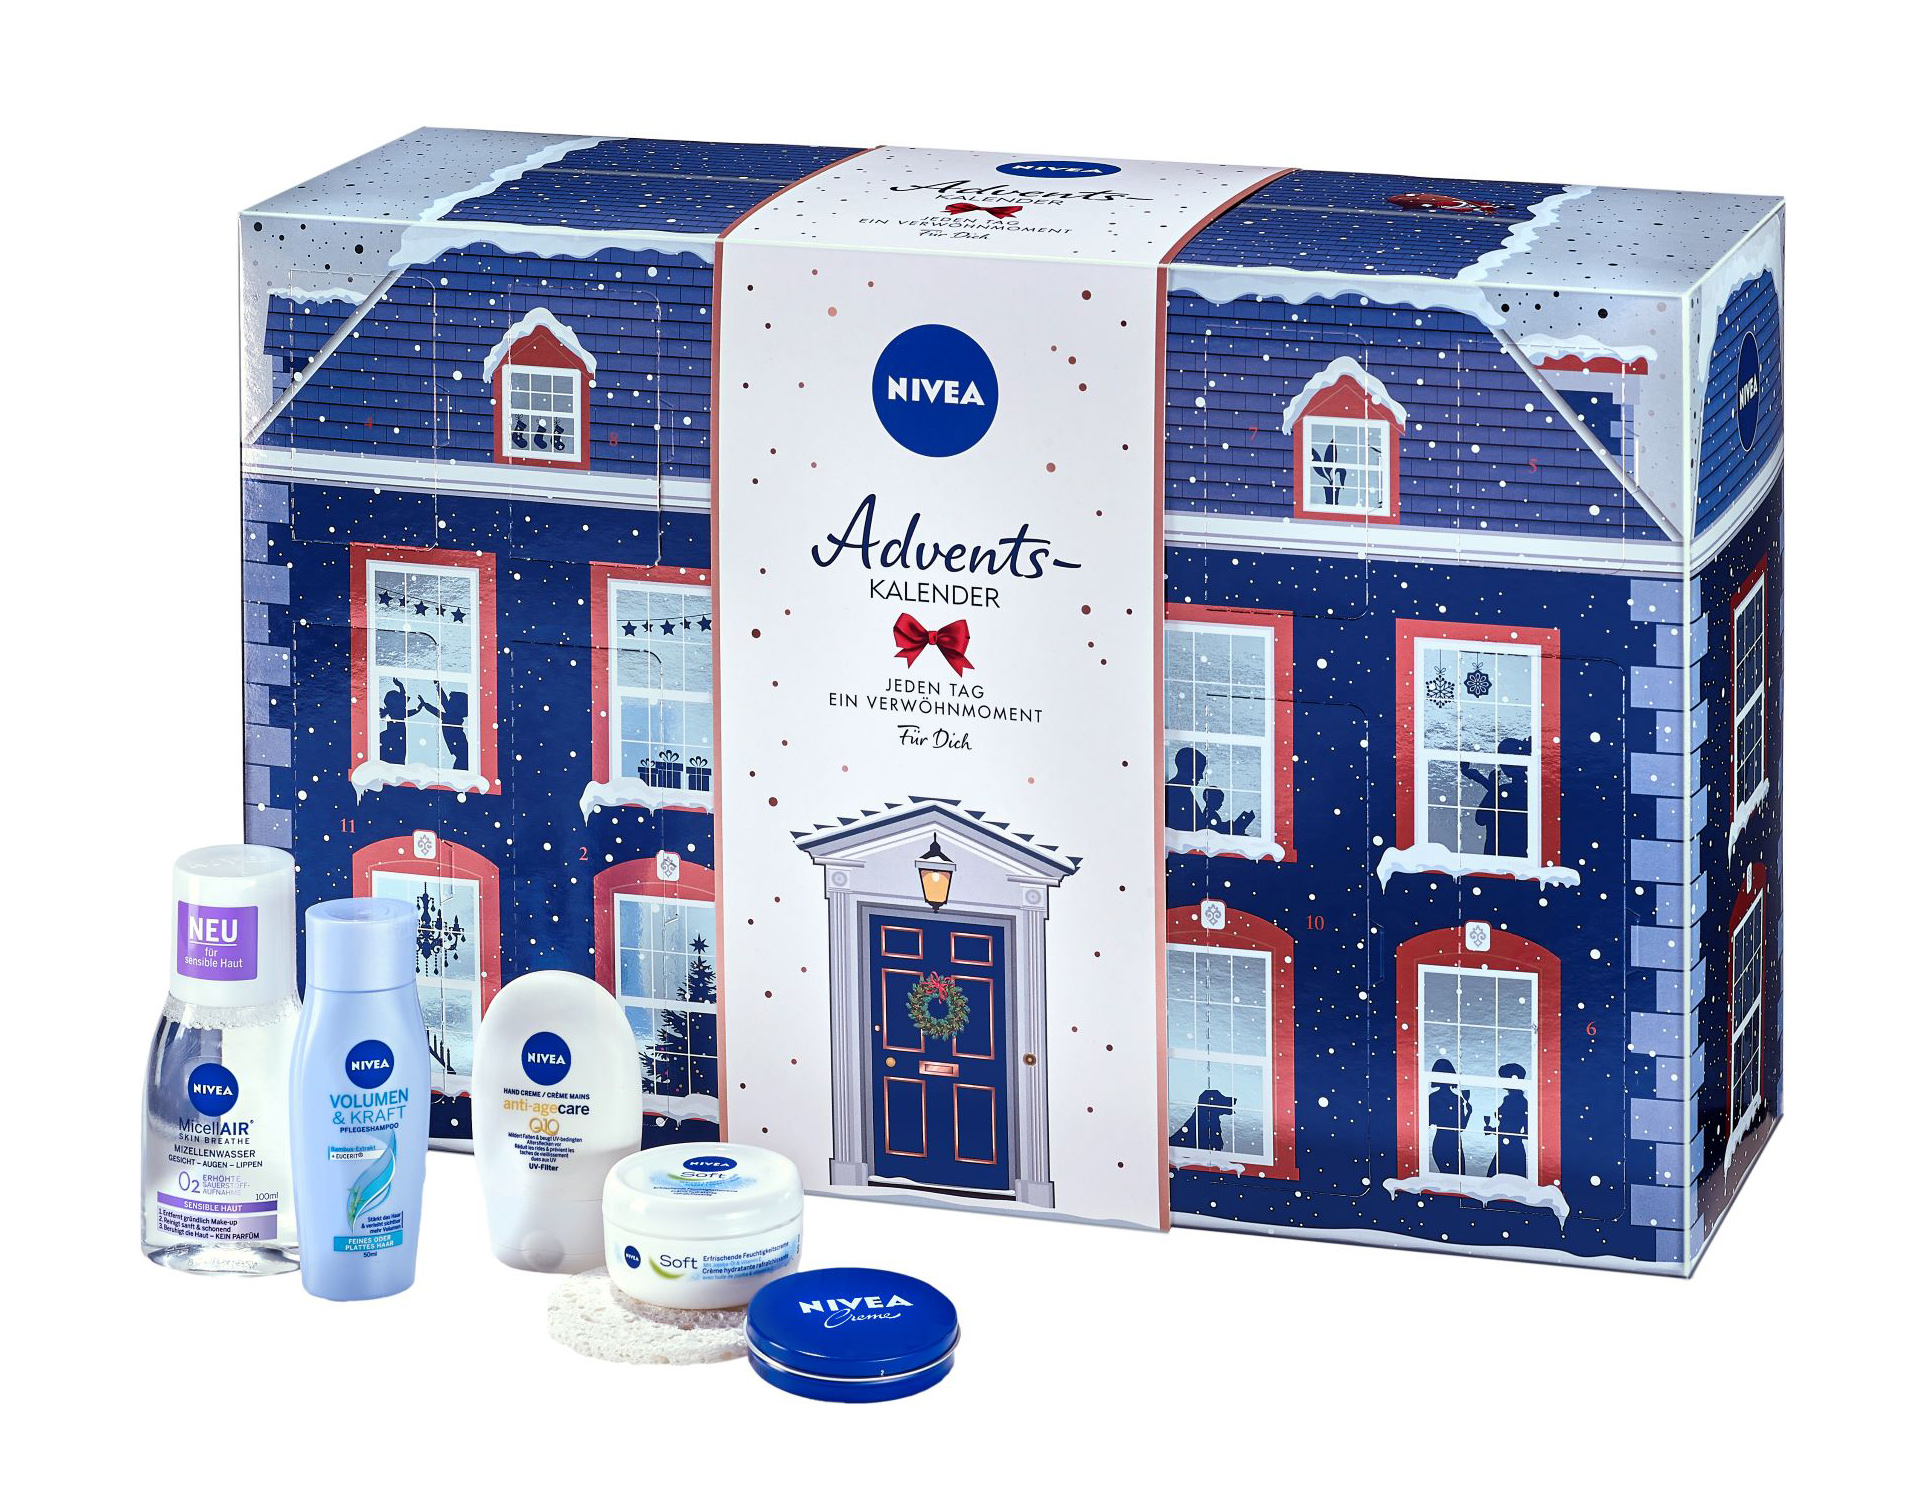 Beauty Adventskalender 2019: Nivea Adventskalender